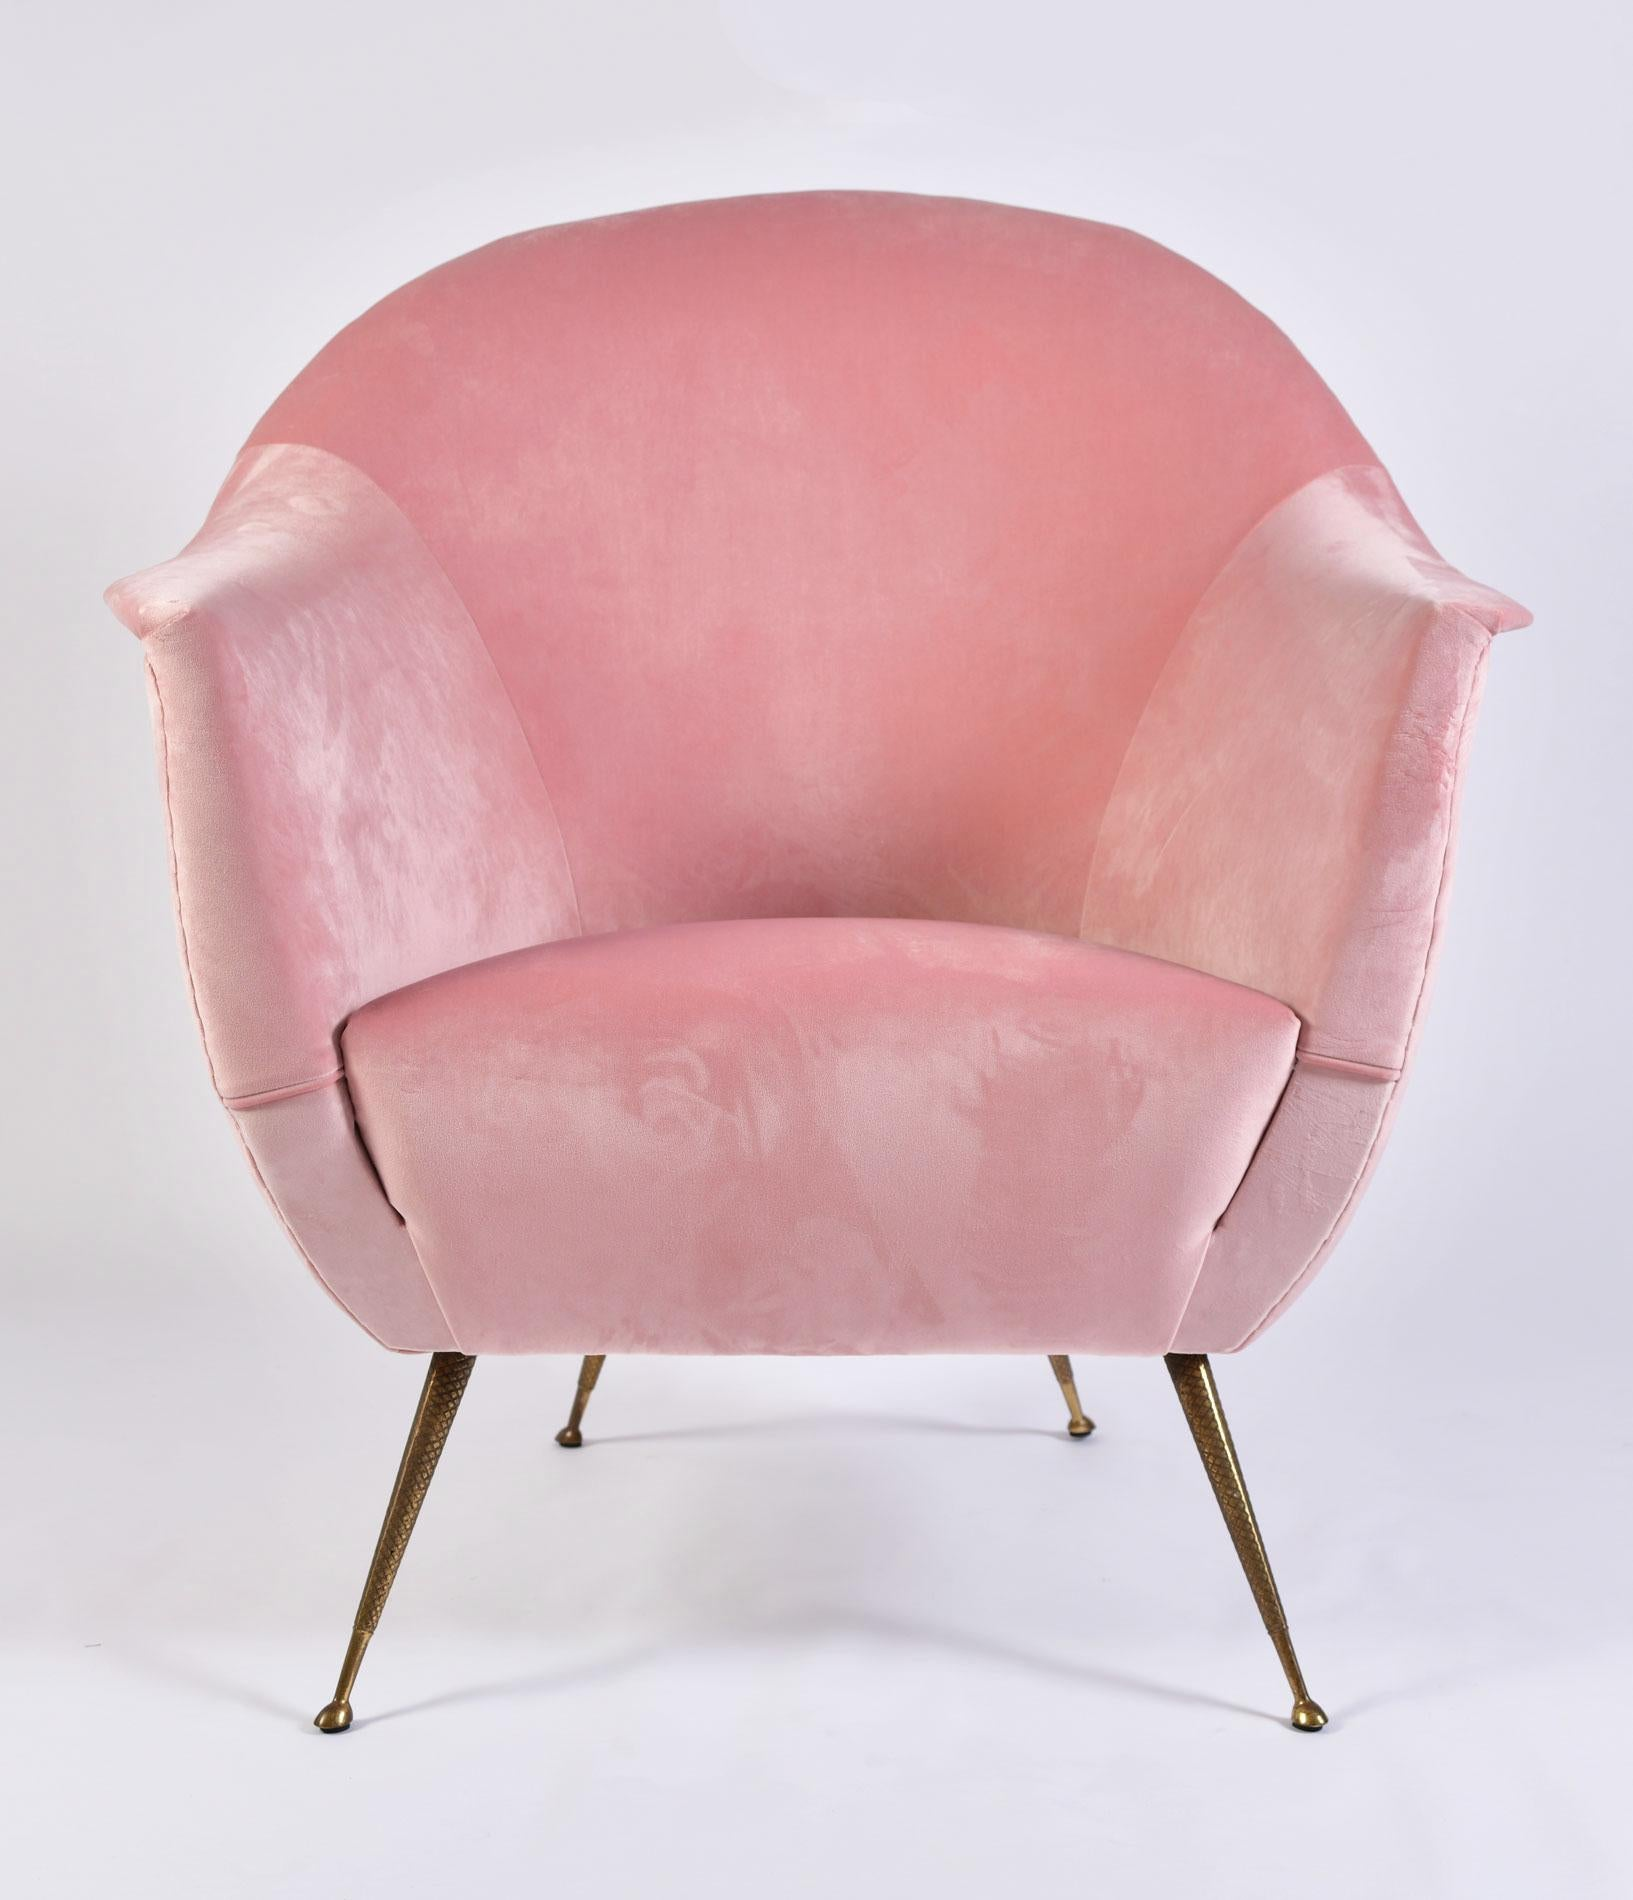 Superbe Luxuriously Shaped Pair Of Midcentury Italian Armchairs Recently  Re Upholstered In Softest Pale Pink Velvet